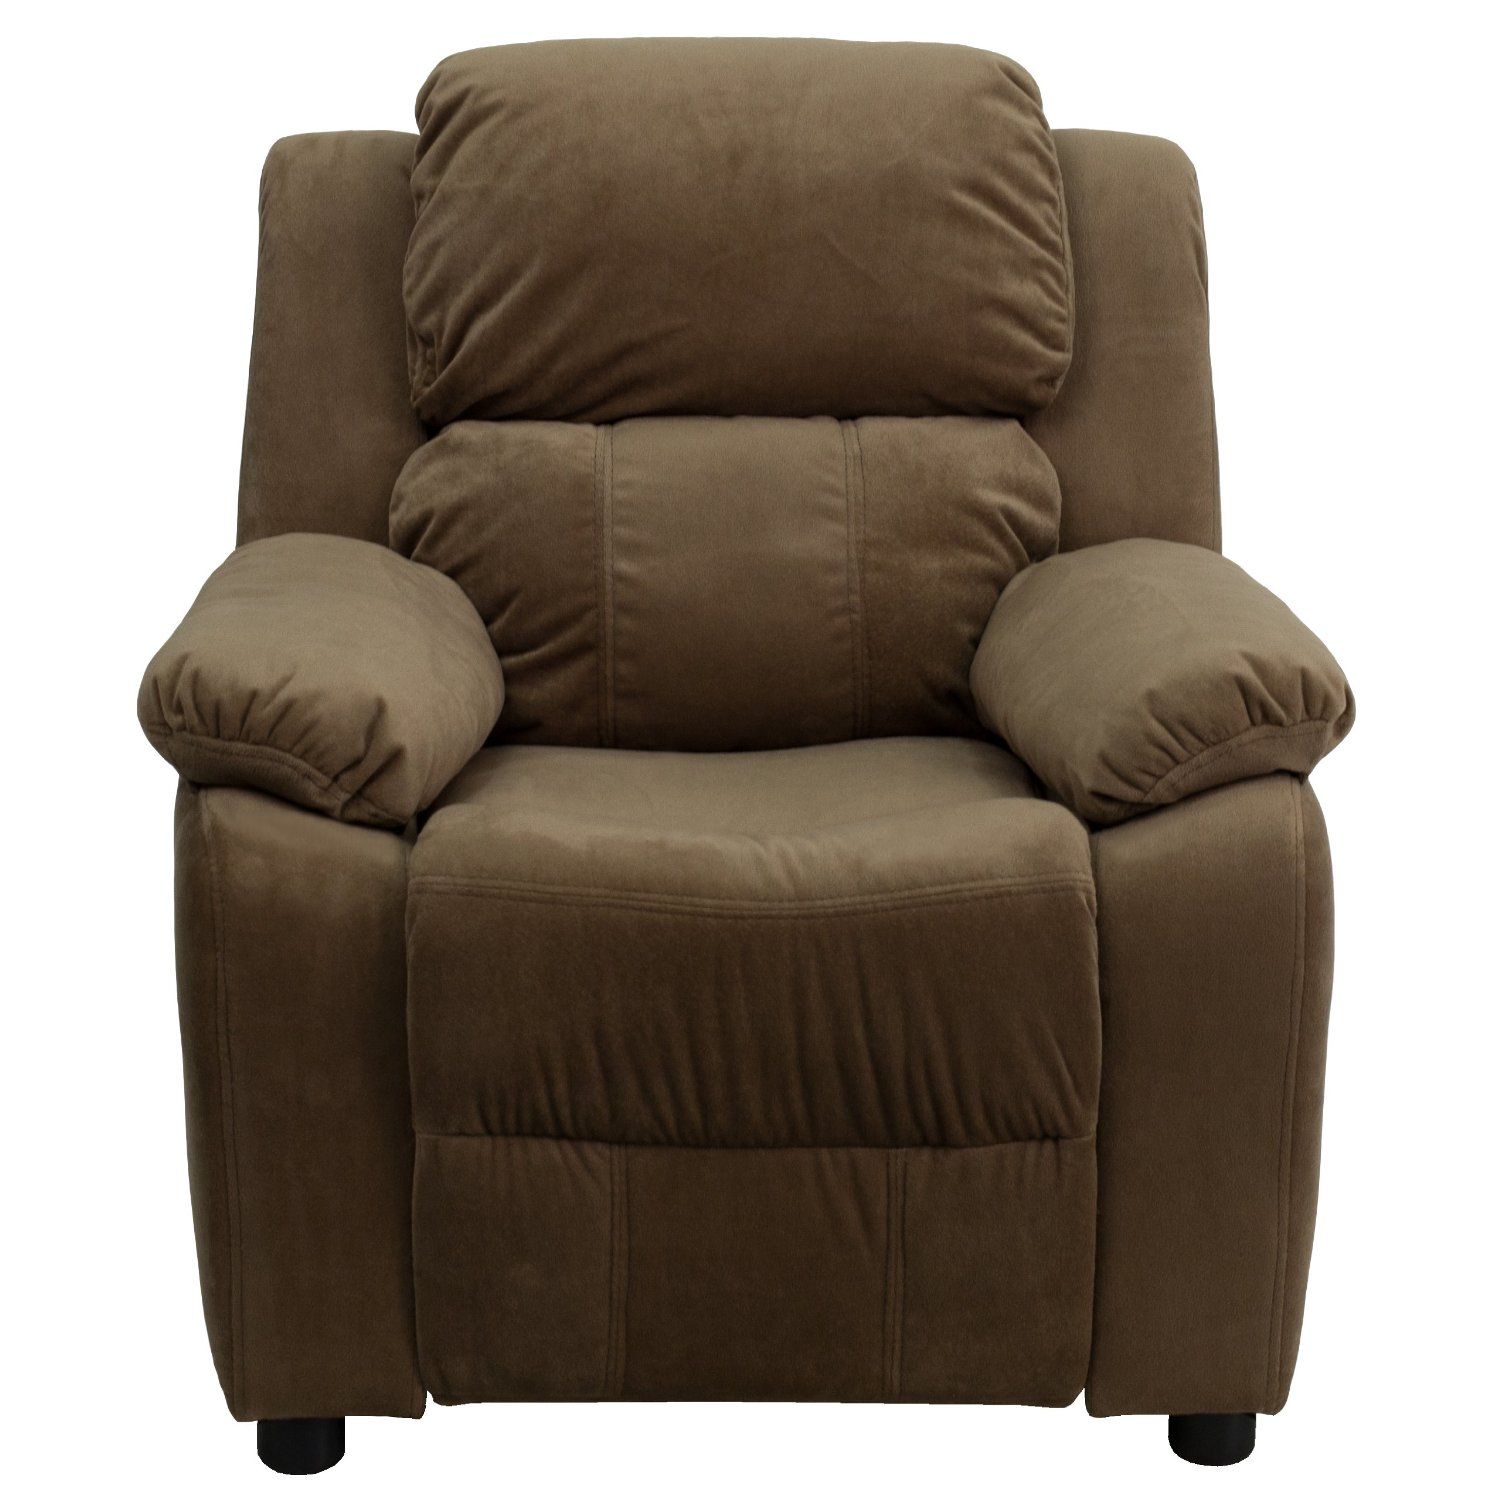 Natuzzi Furniture Sears Furniture costco furniture sale costco